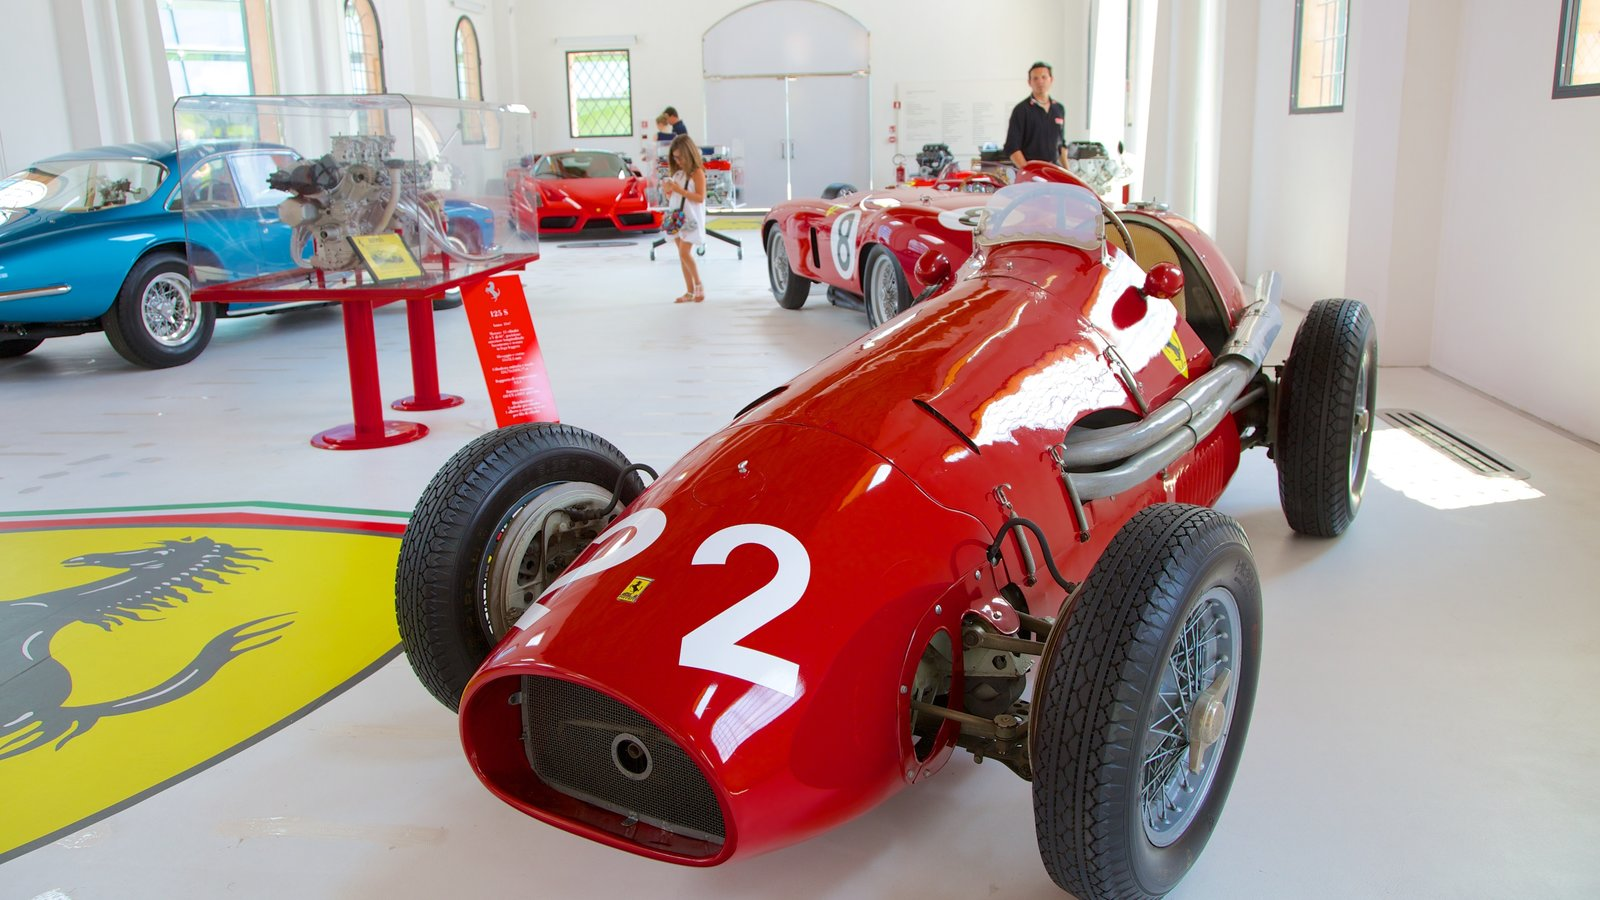 Museo Casa Enzo Ferrari featuring interior views